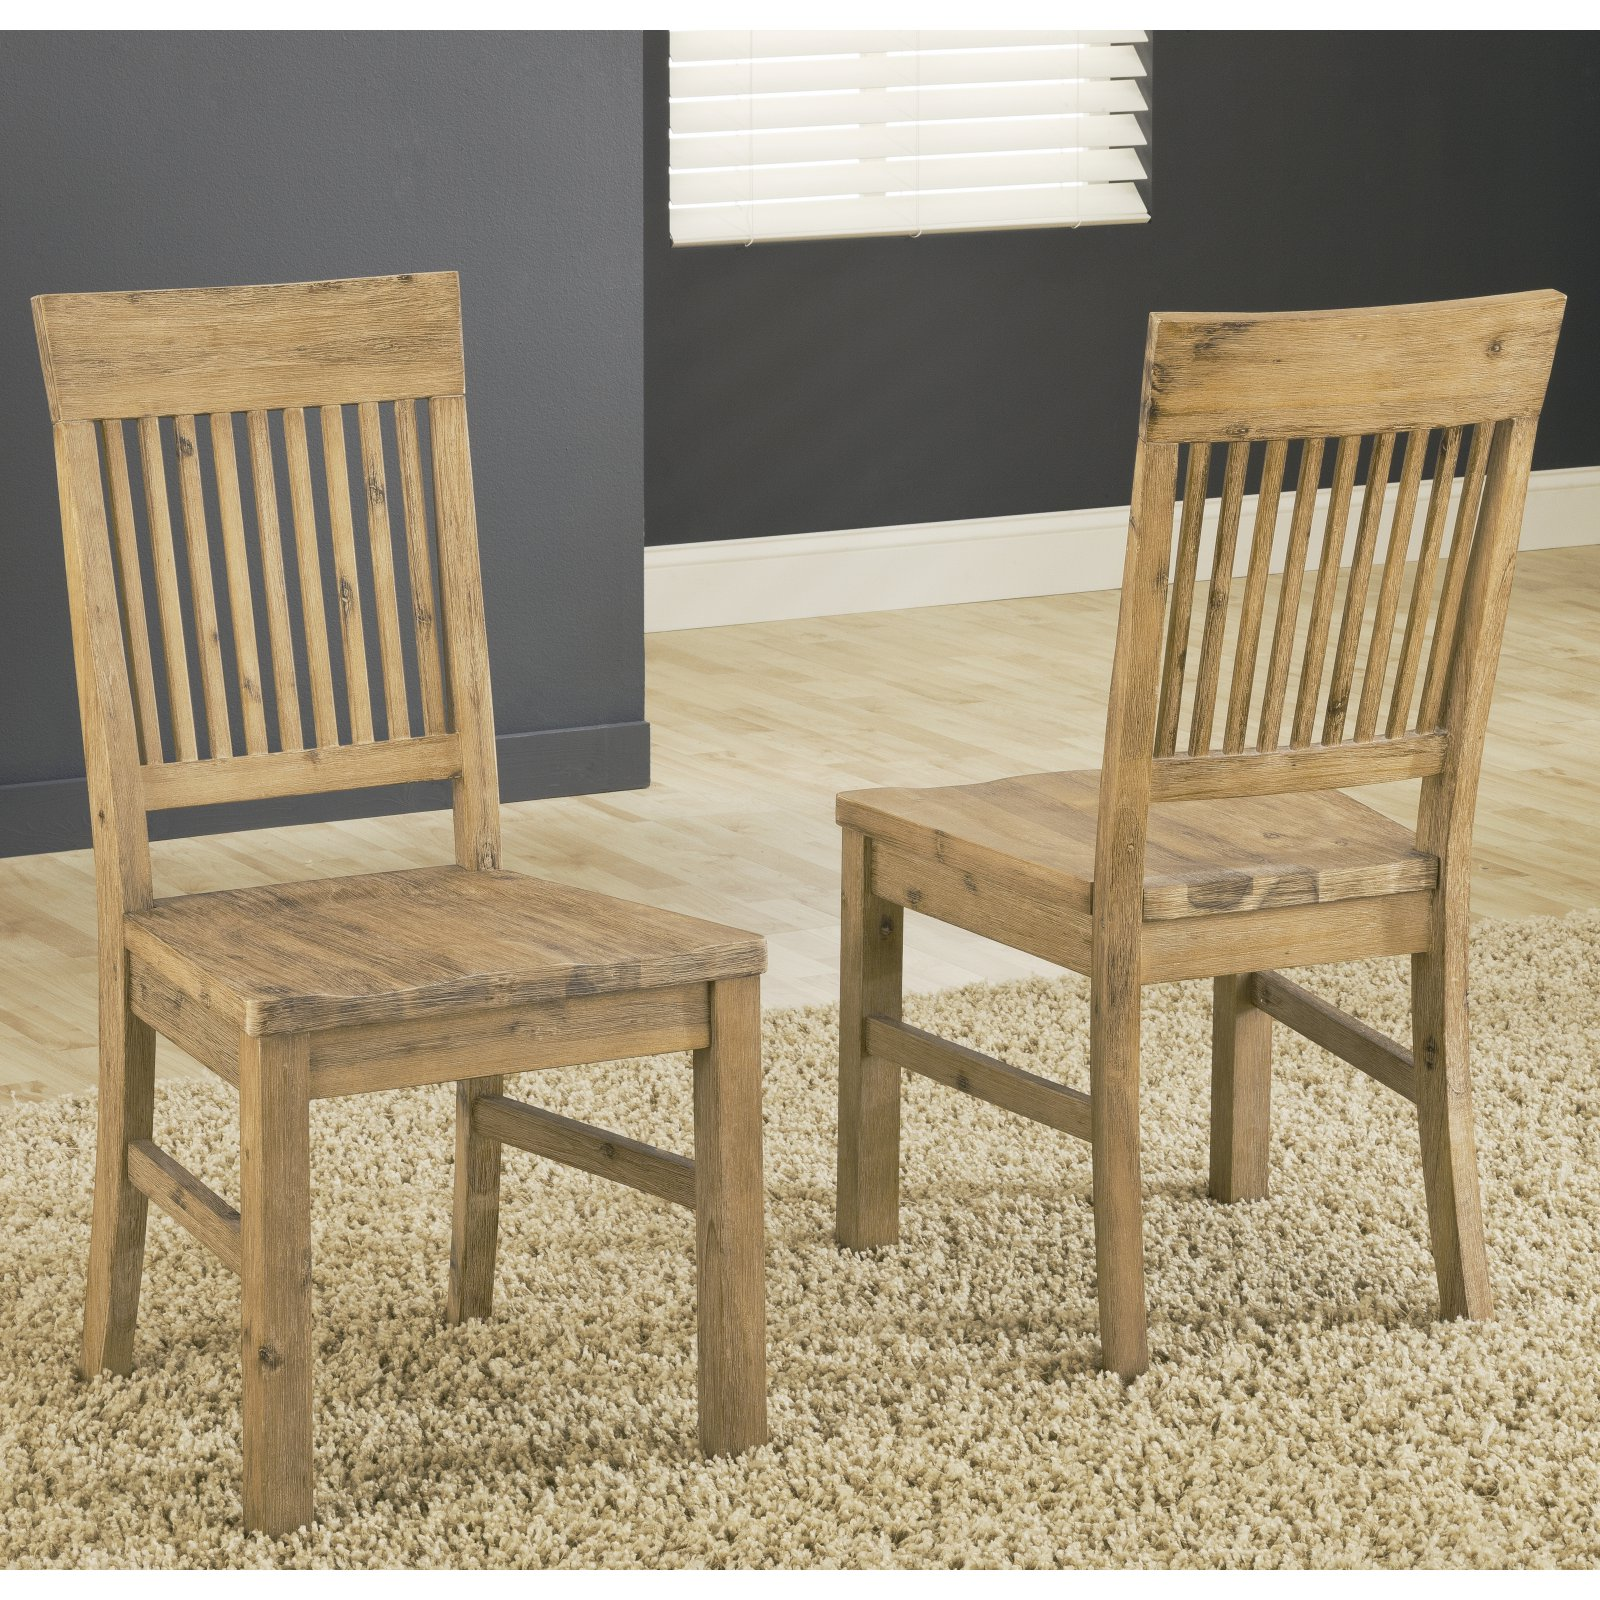 Modus Autumn Solid Wood Dining Side Chair Cider Set of 2 by Modus Furniture